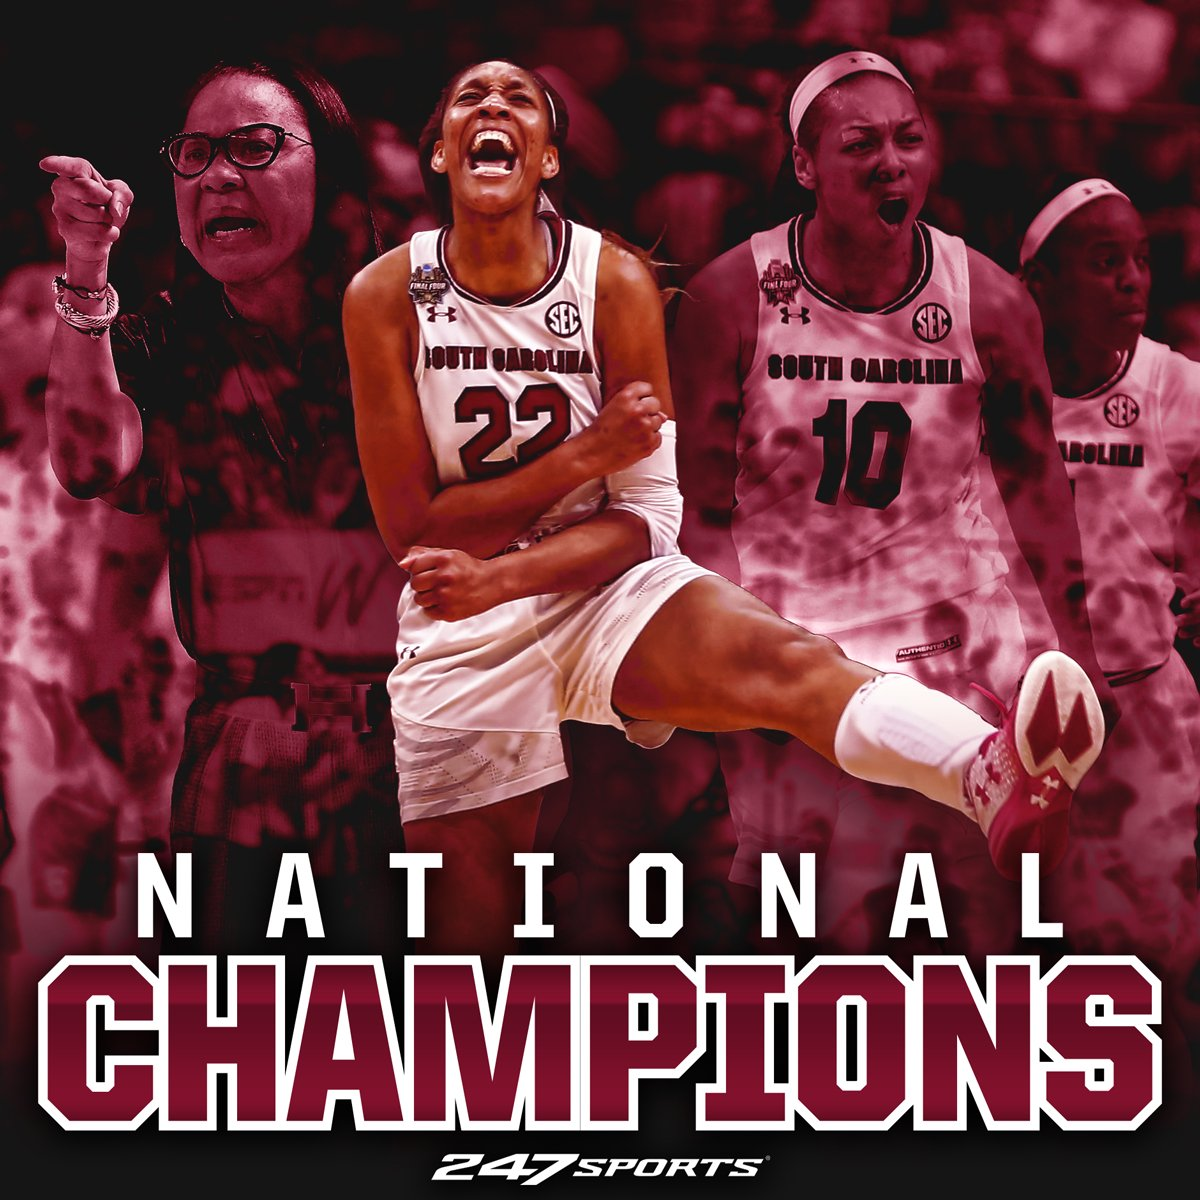 thebigspur com on final south carolina defeats thebigspur com on final south carolina defeats mississippi state 67 55 to win its first national championship